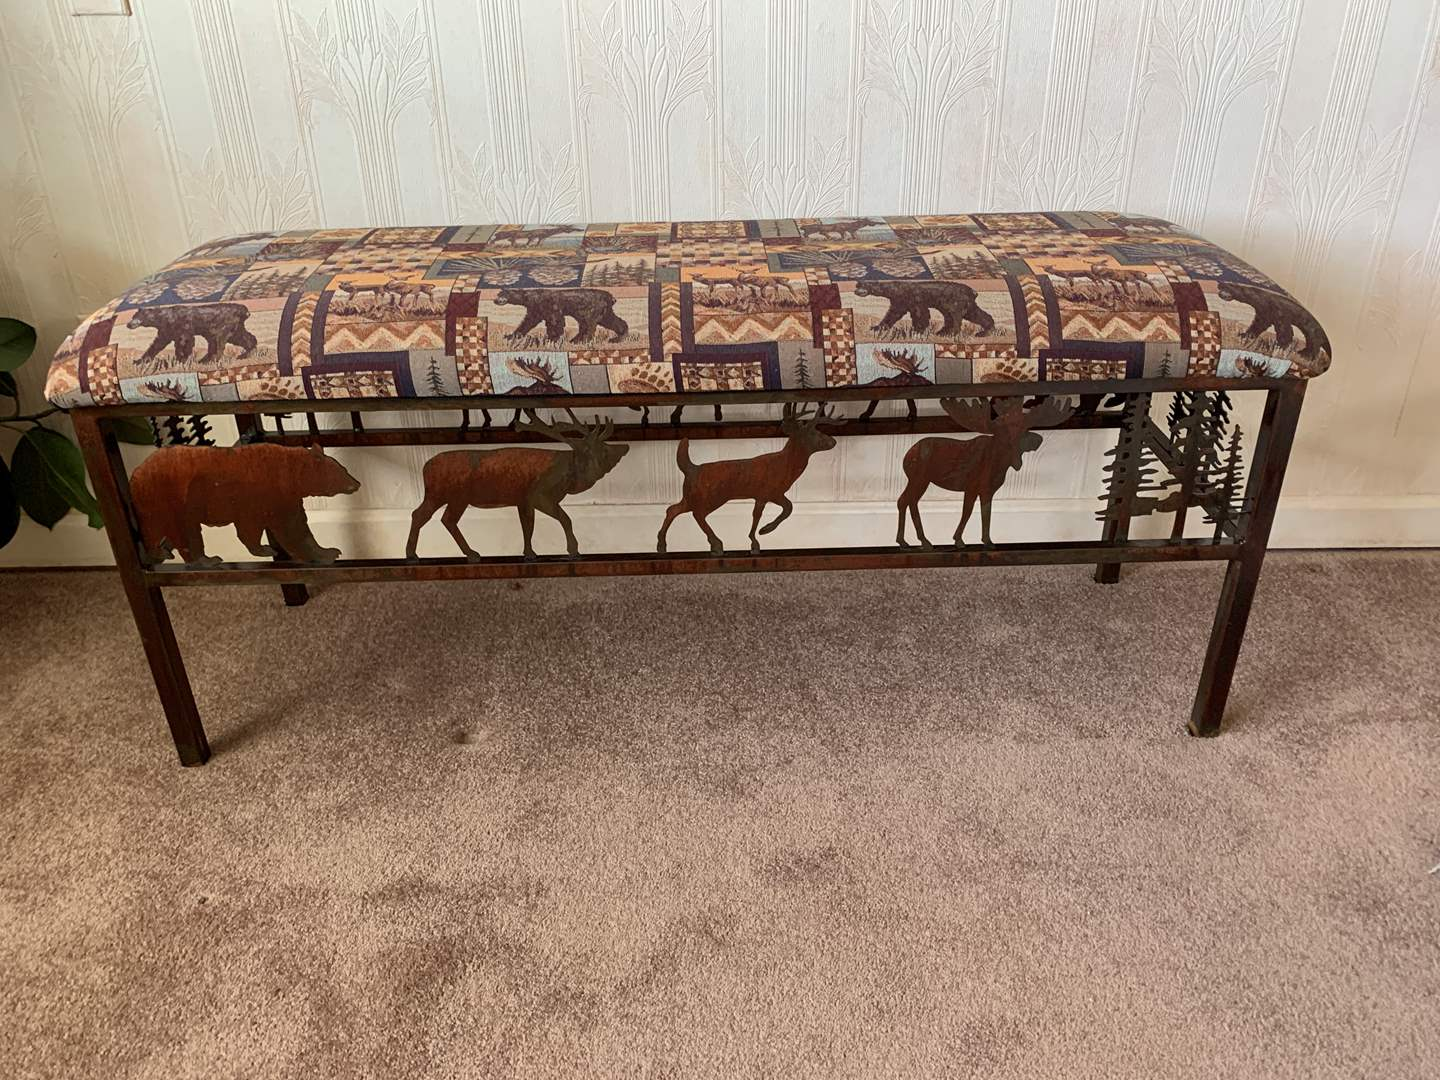 Lot # 19 Upholstererd Bench with Metal Frame (main image)